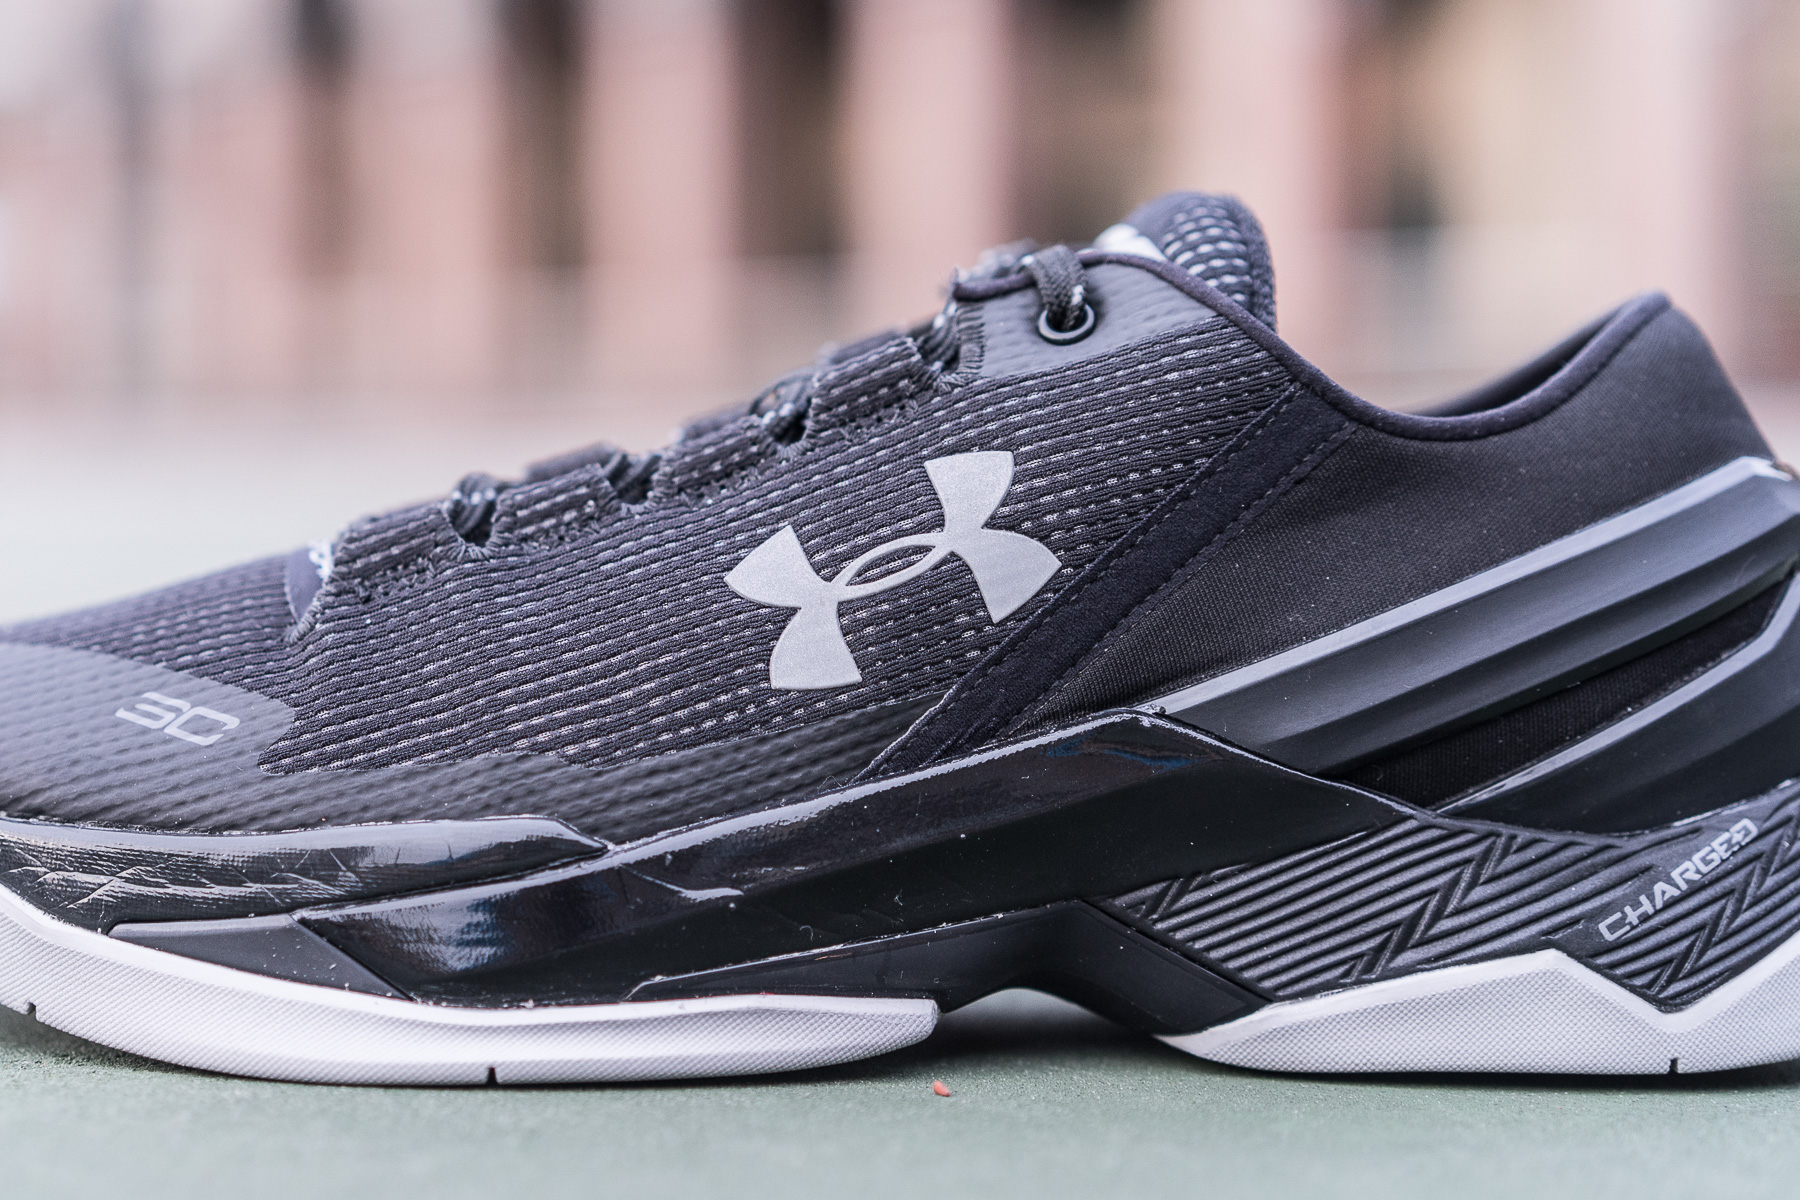 833b17e9a305 under armour-curry 2 low-unboxing and review-18 – KENLU.net